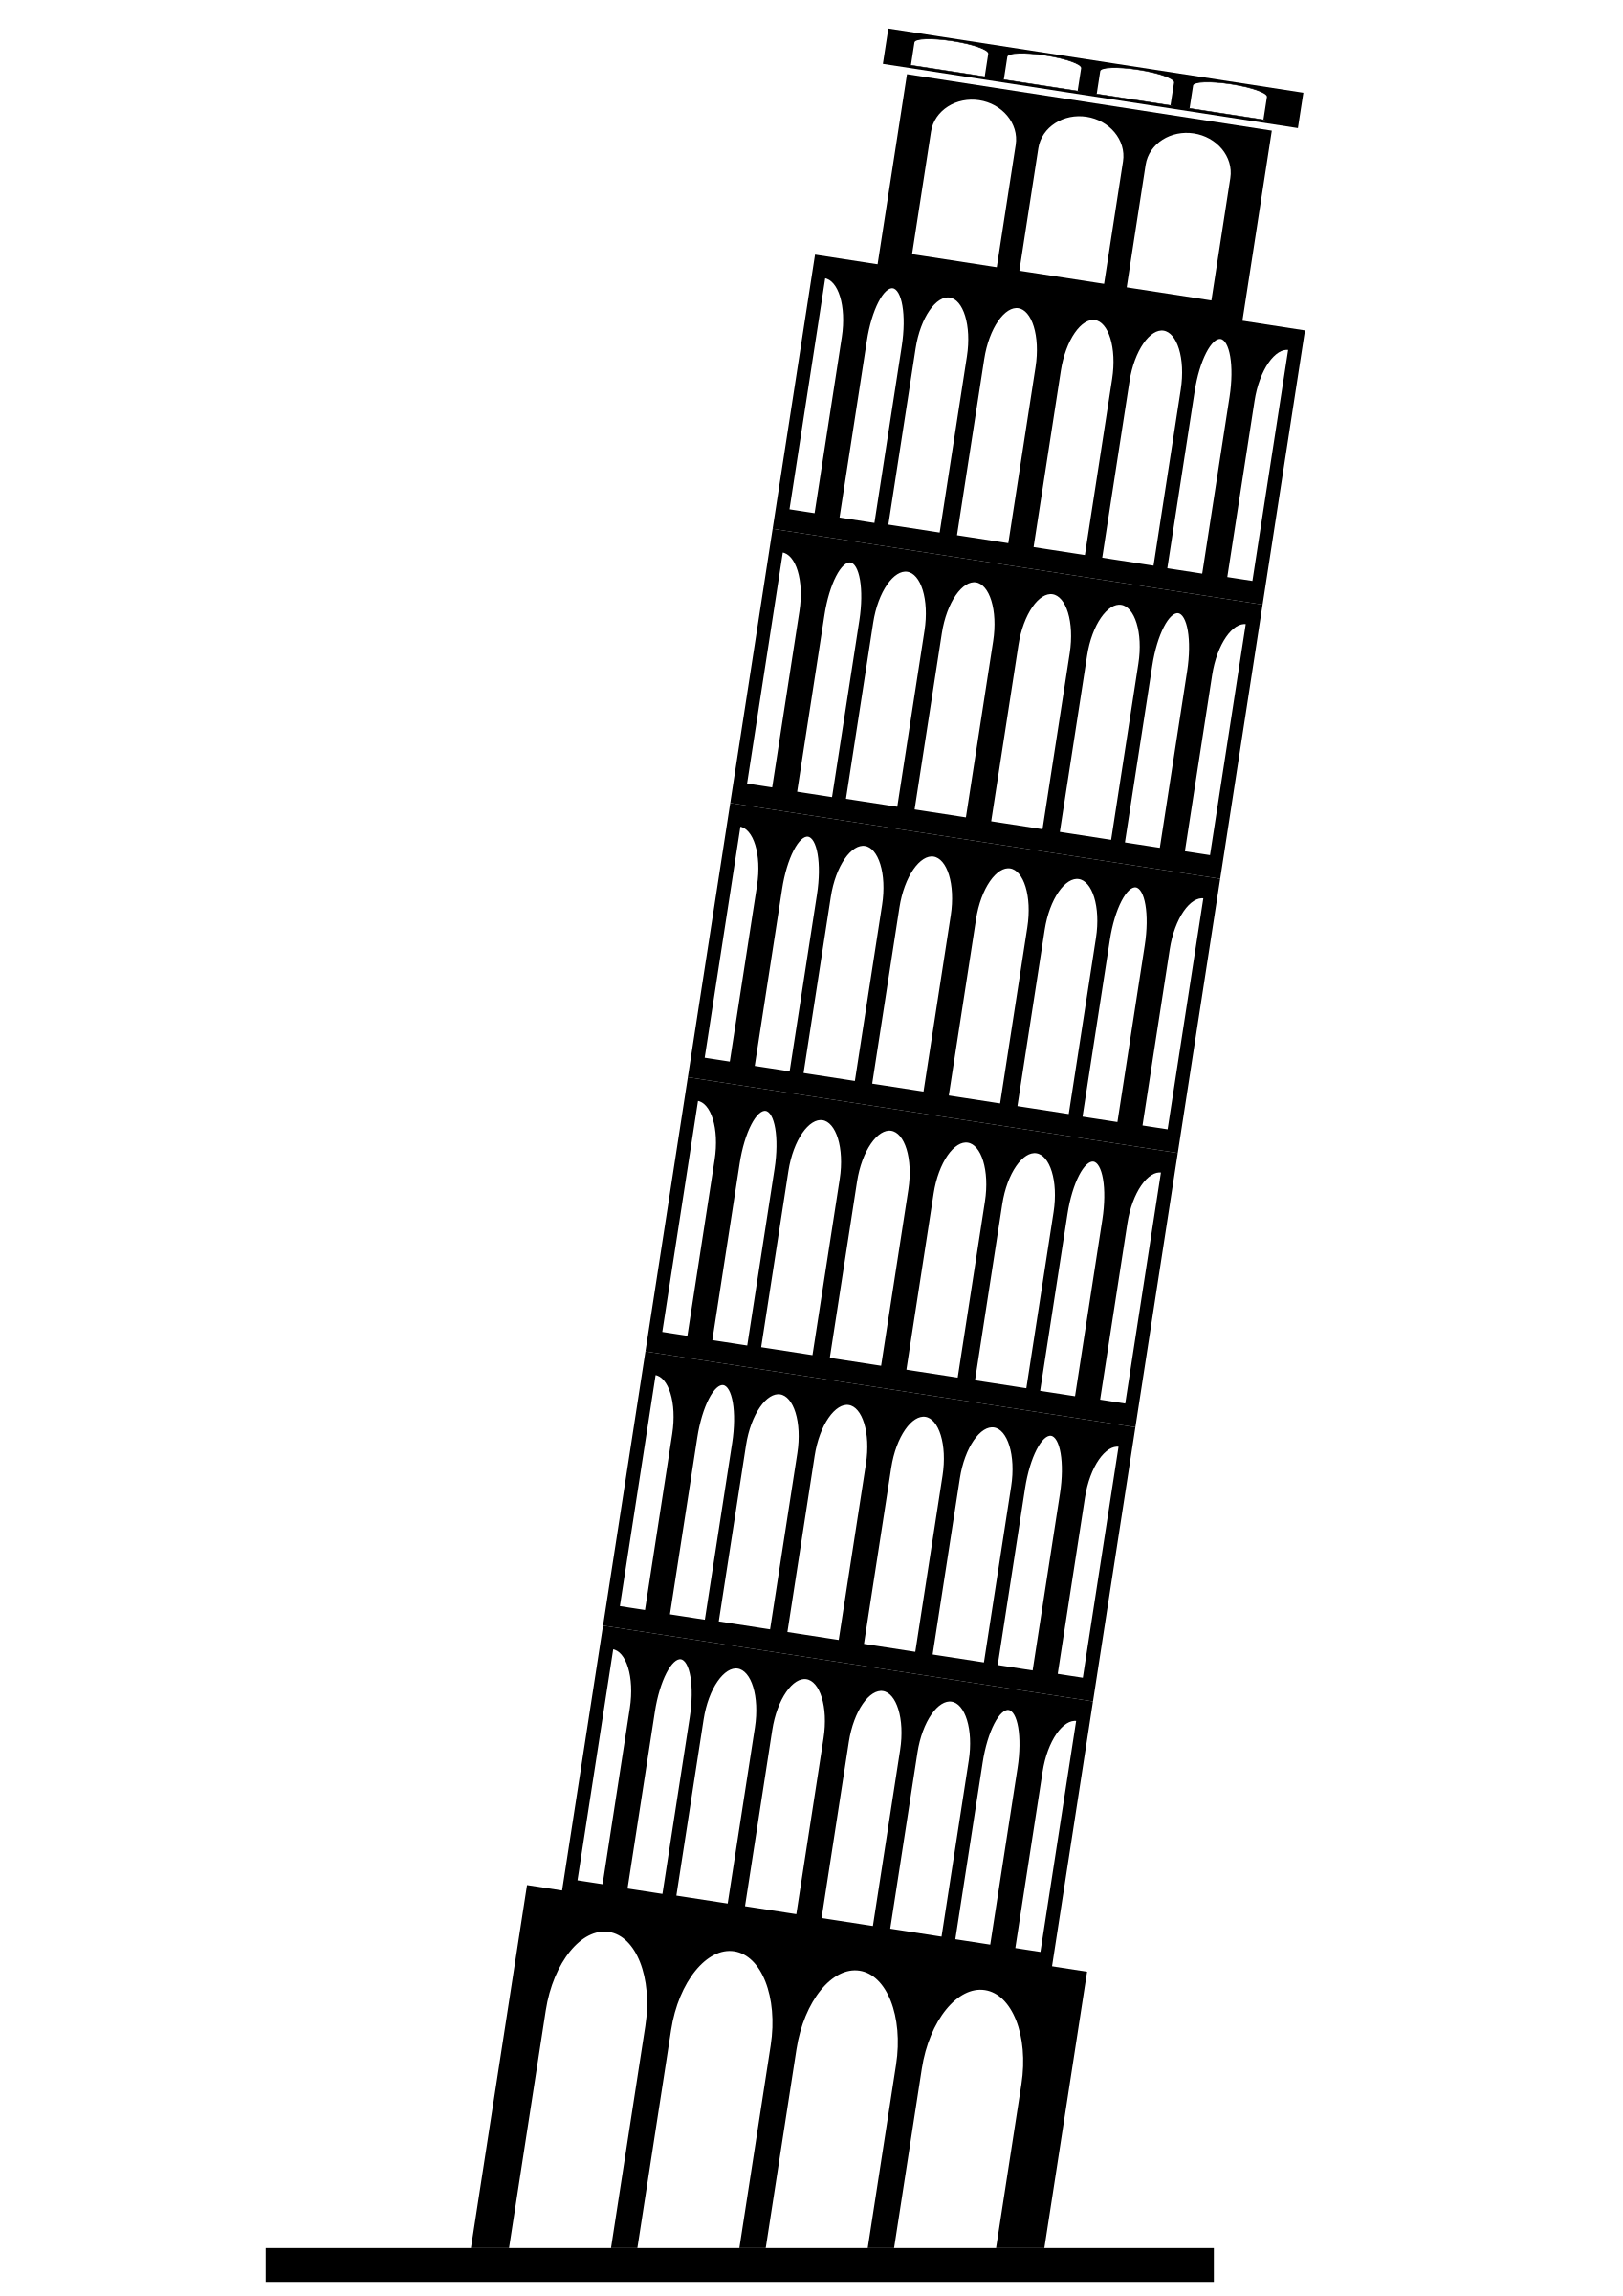 pisa tower drawing leaning tower of pisa detail by emzocreations on deviantart tower drawing pisa